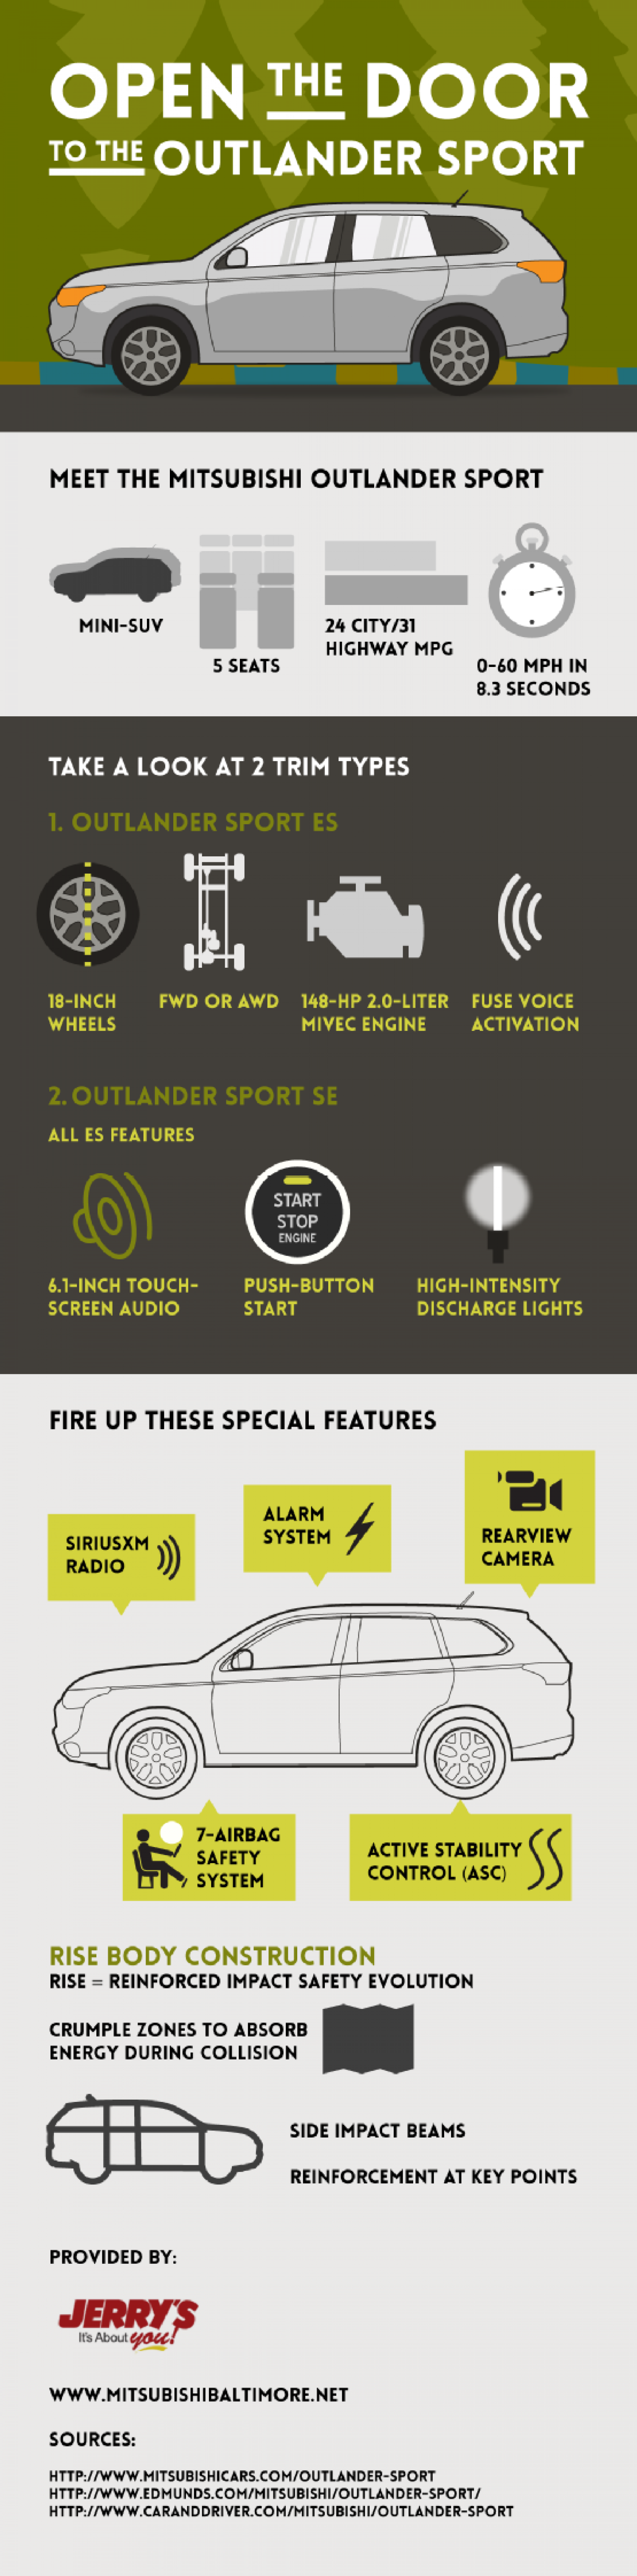 Open the Door to the Outlander Sport Infographic